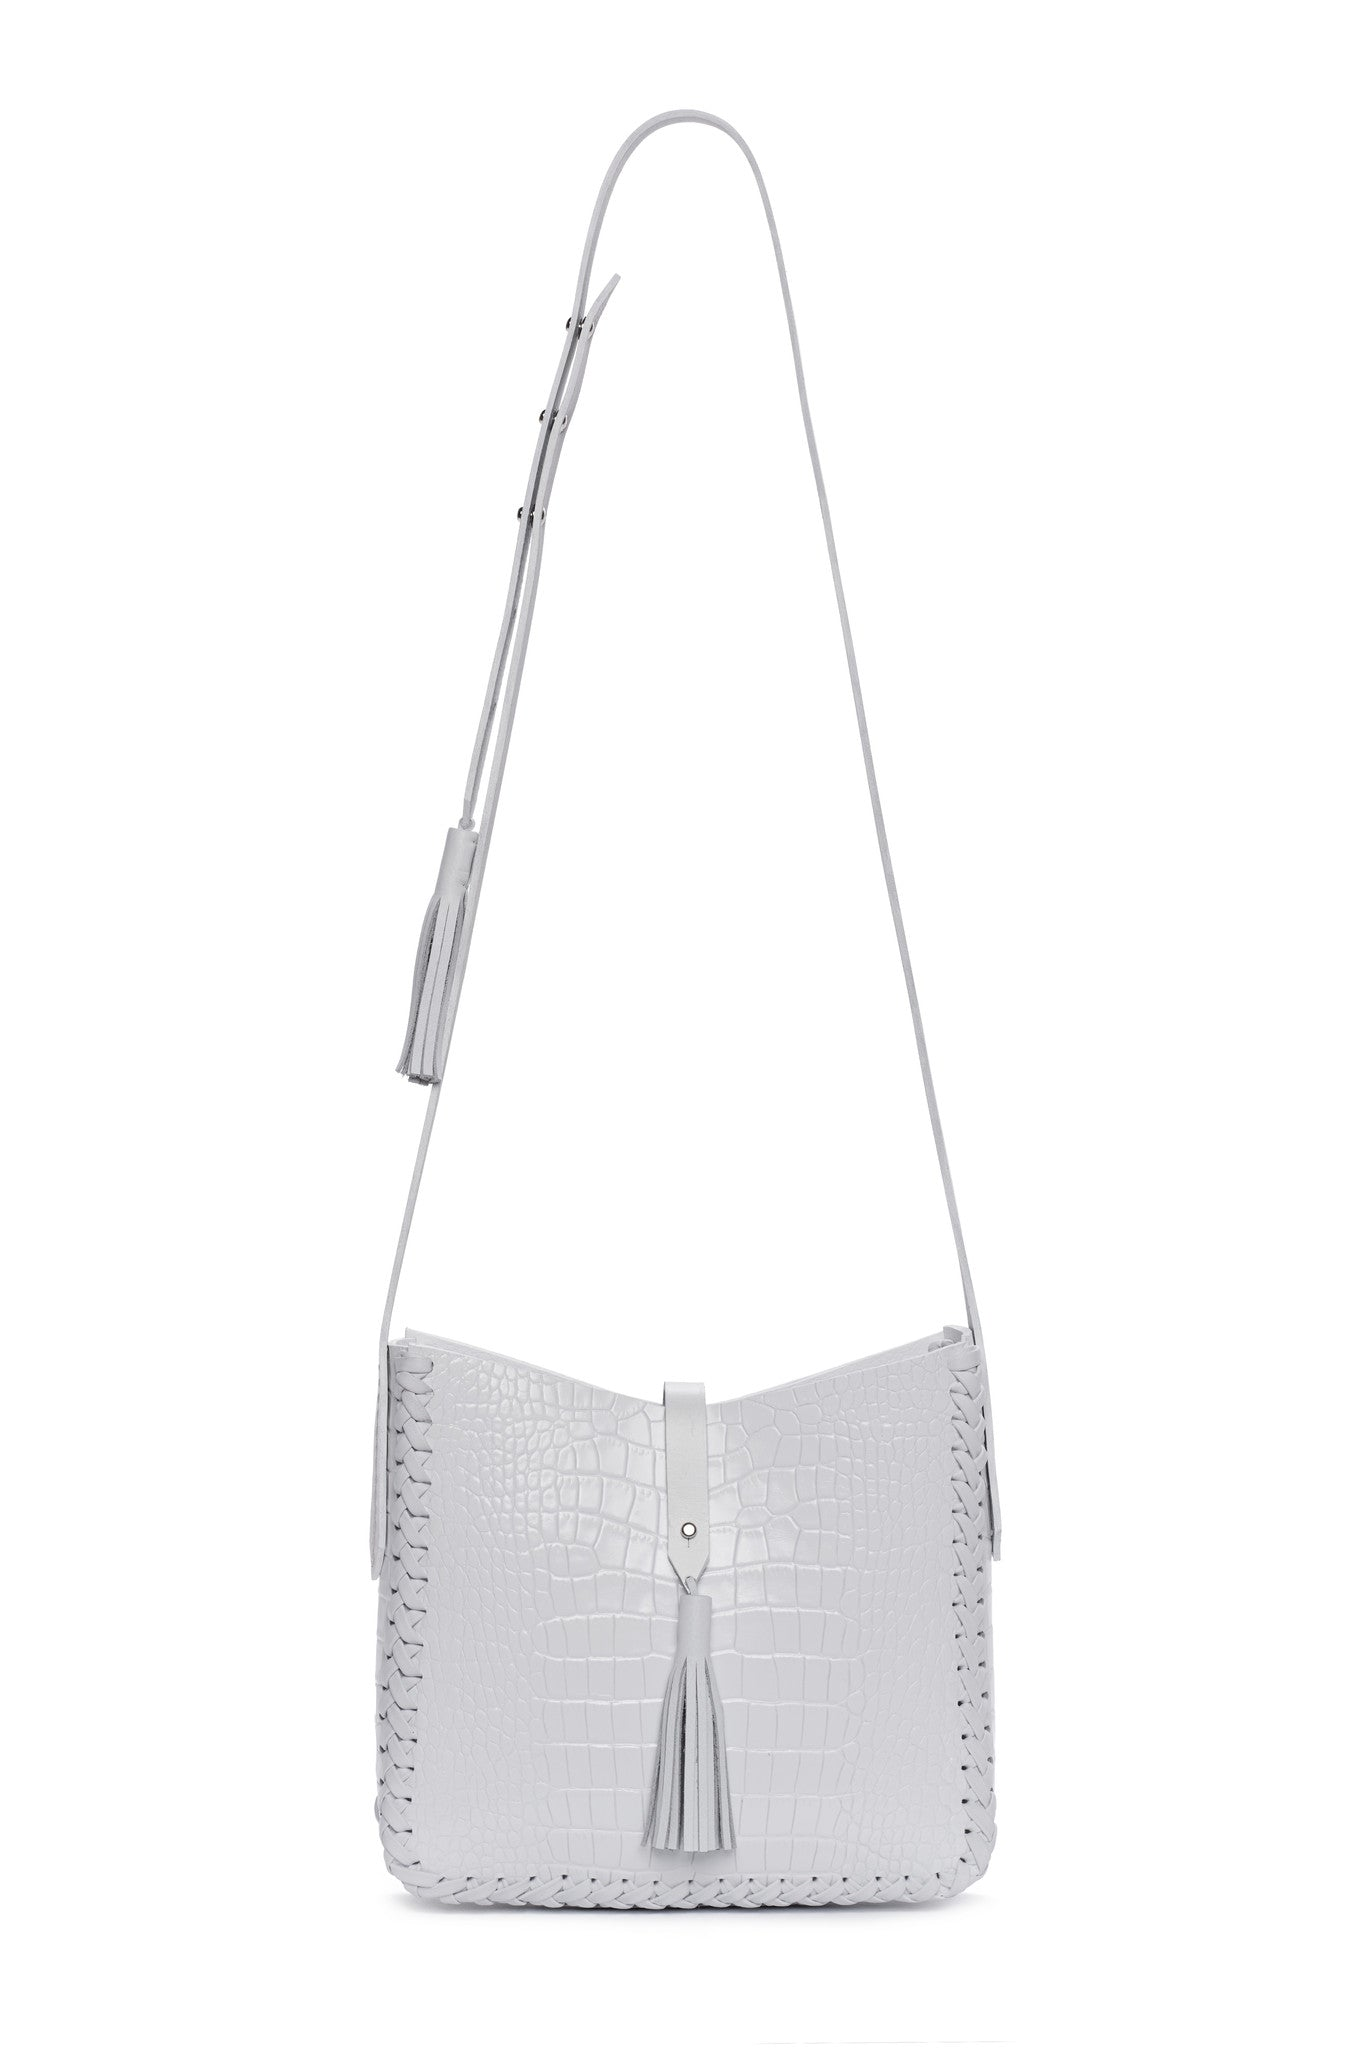 Leather Saddle Bag Wendy Nichol cross body  Handmade Handbag in NYC white embossed Croc  Crocodile Alligator Leather